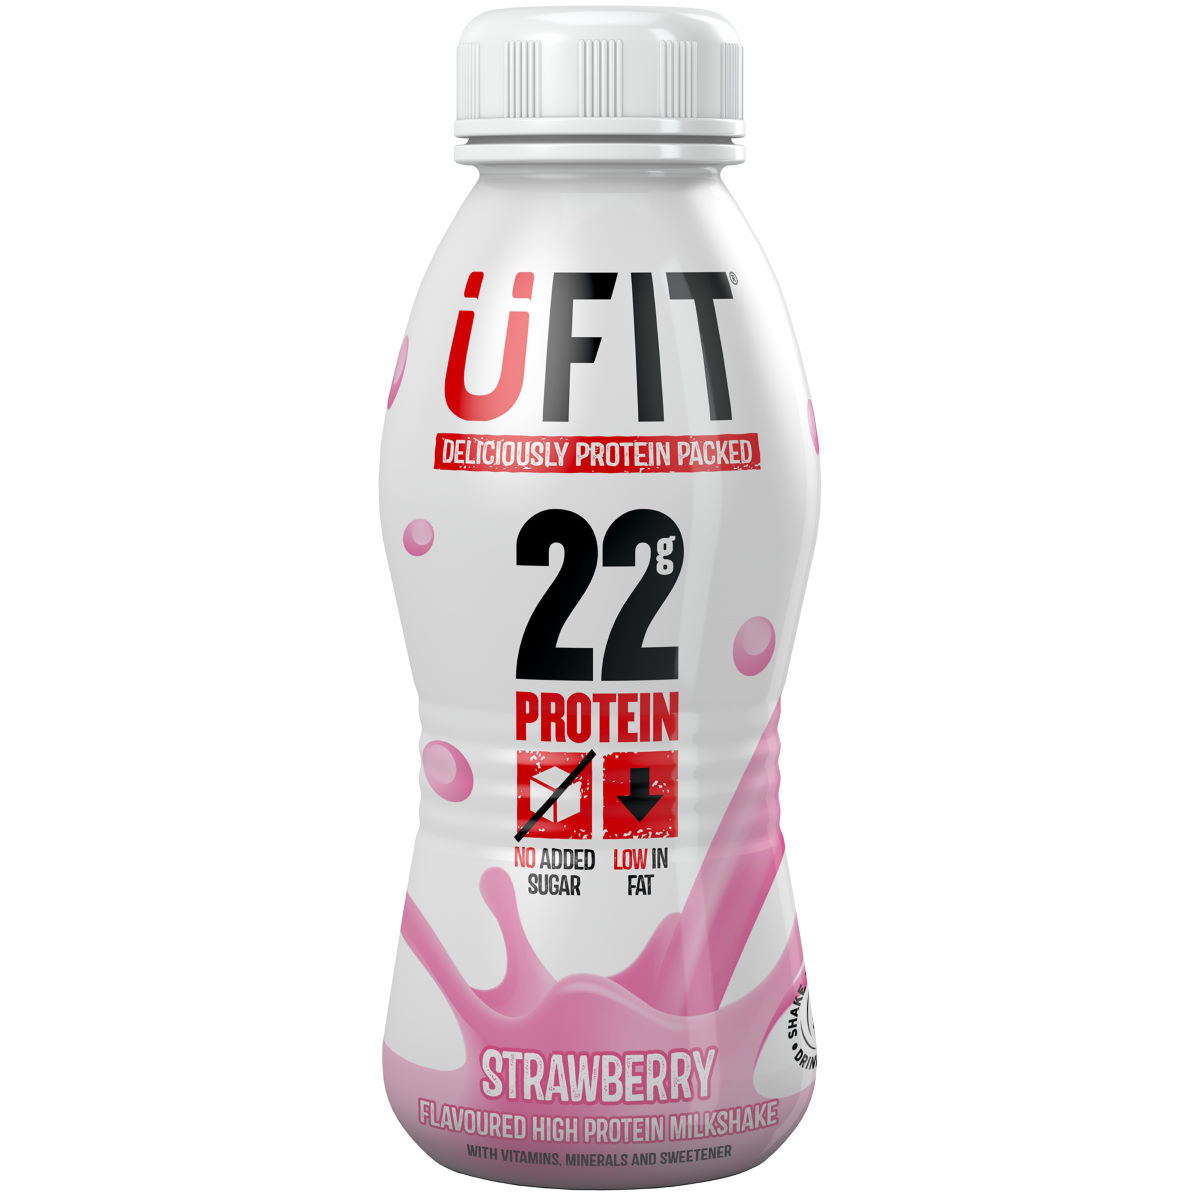 UFIT UFIT High Protein Drink (310ml)   Ready to Drink